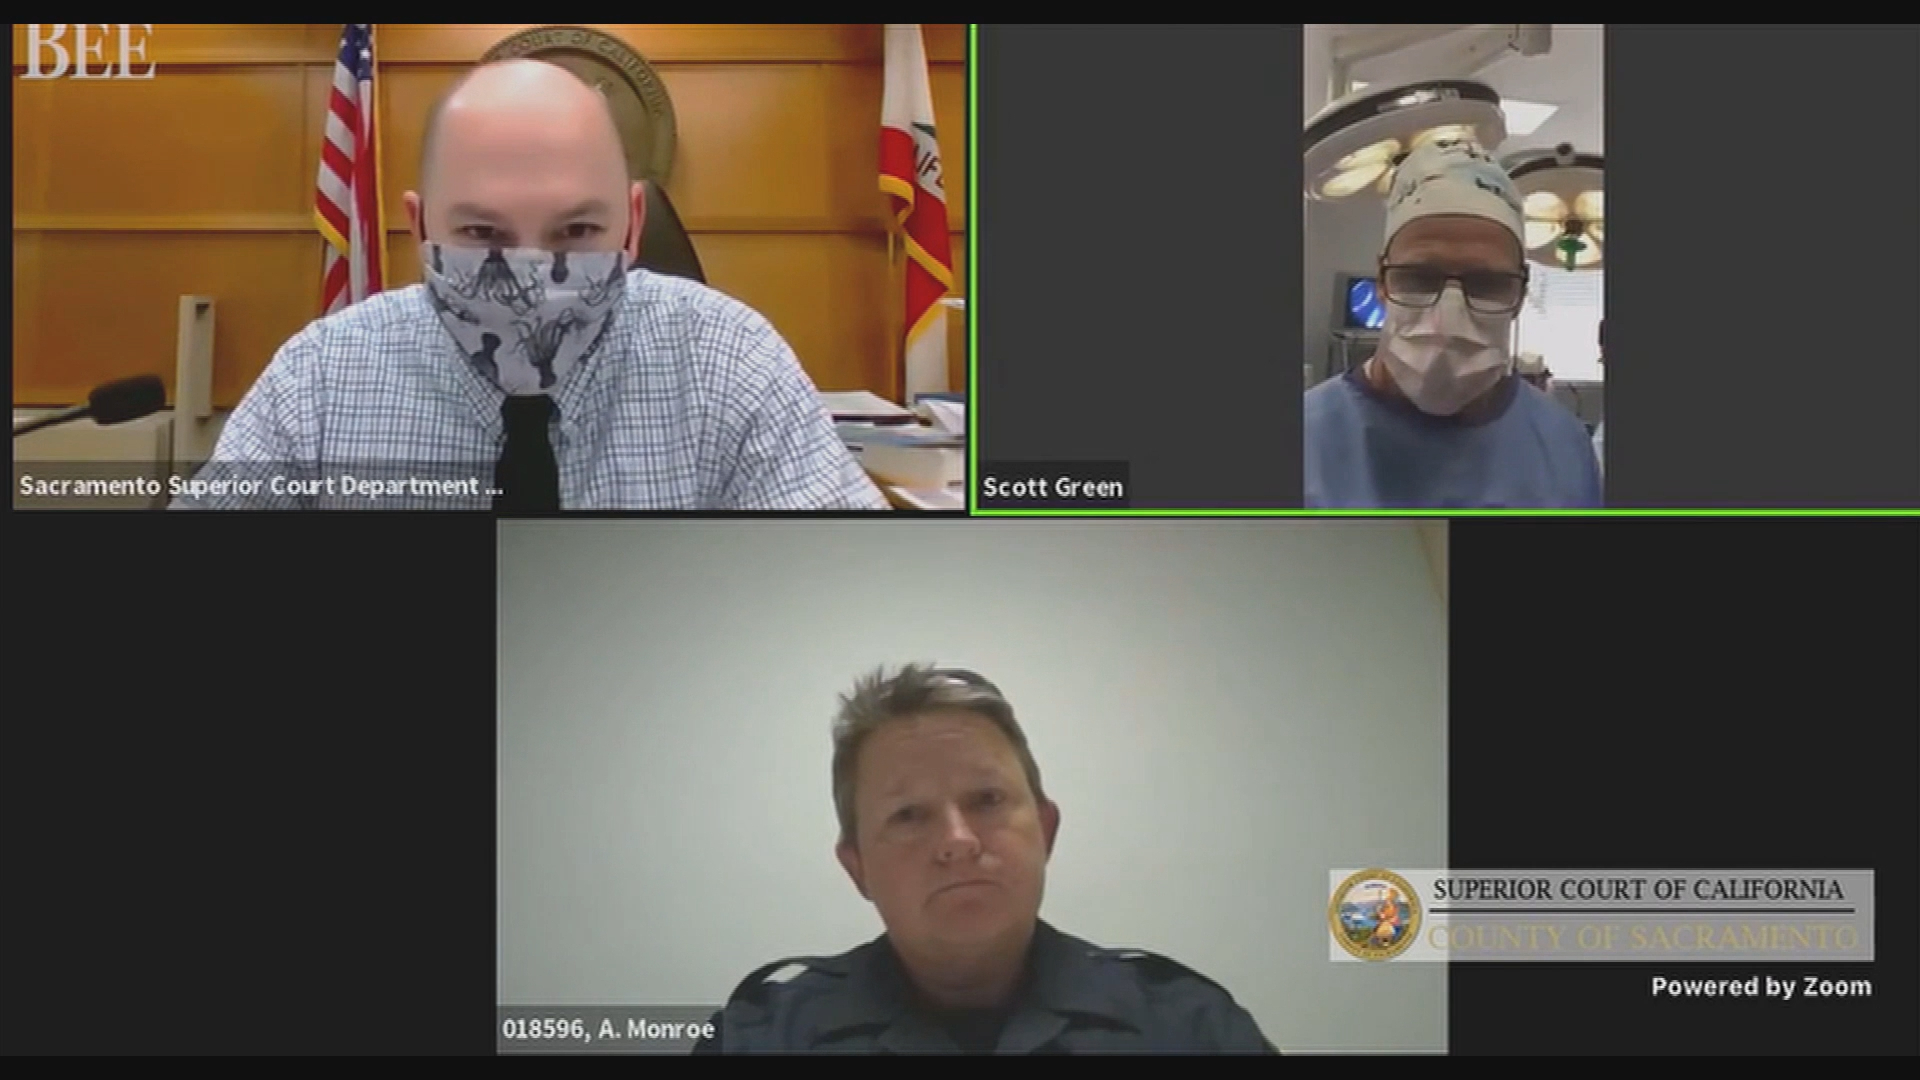 US doctor performs surgery while appearing in court video link